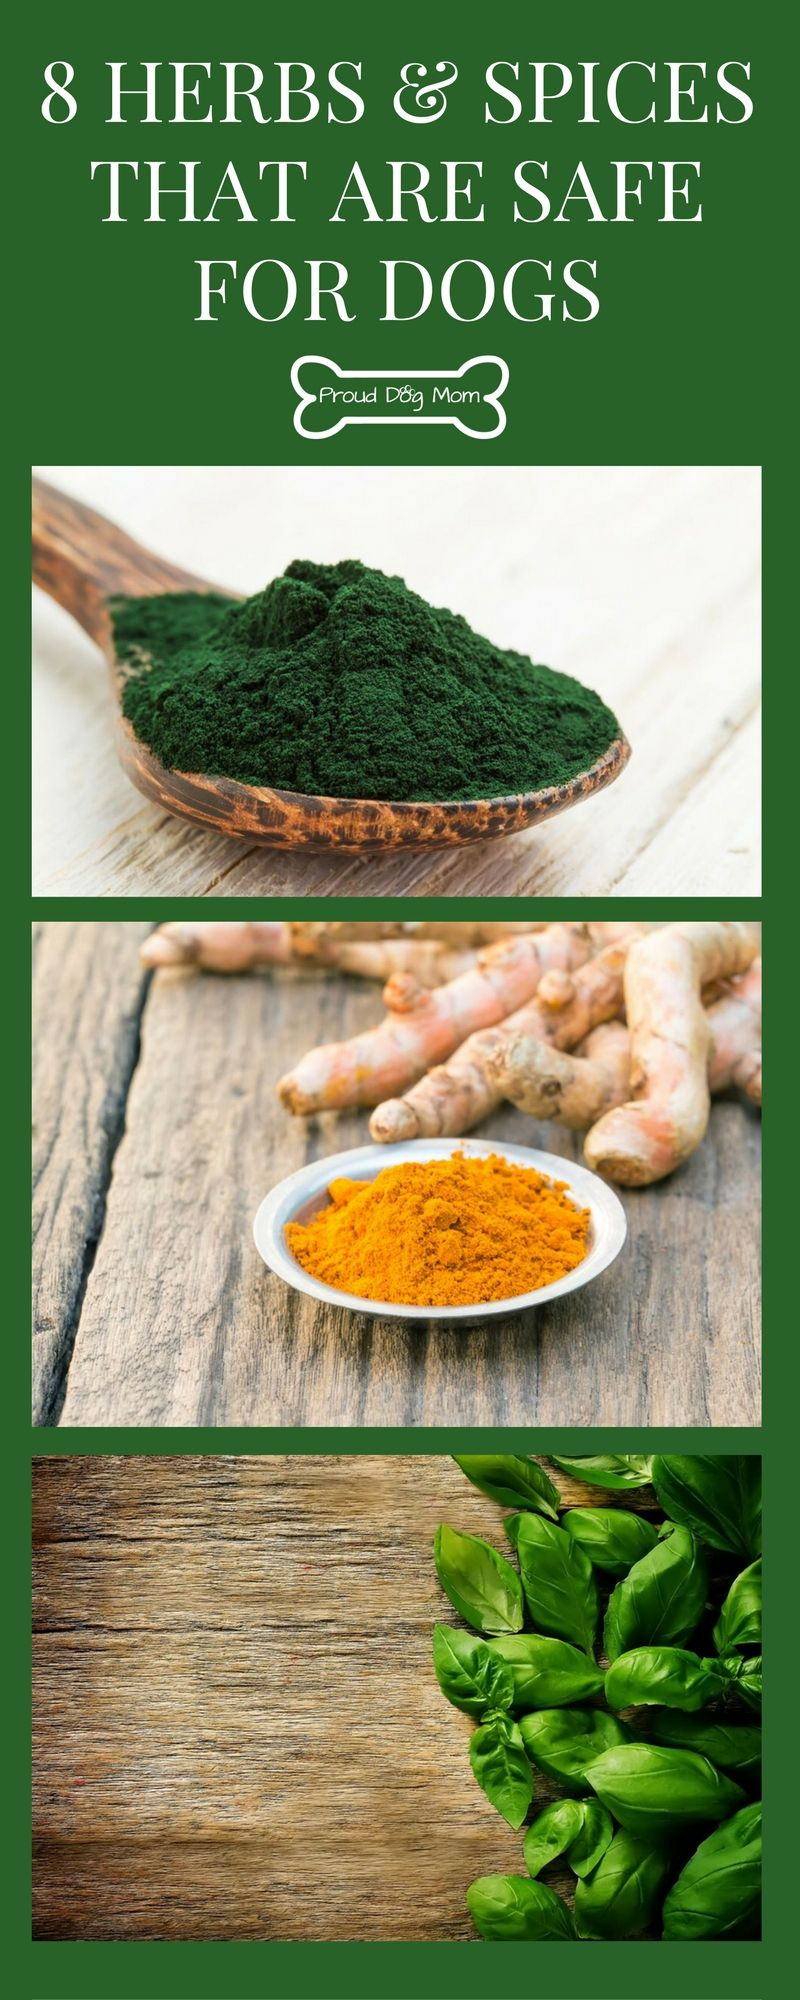 8 Healthy Herbs and